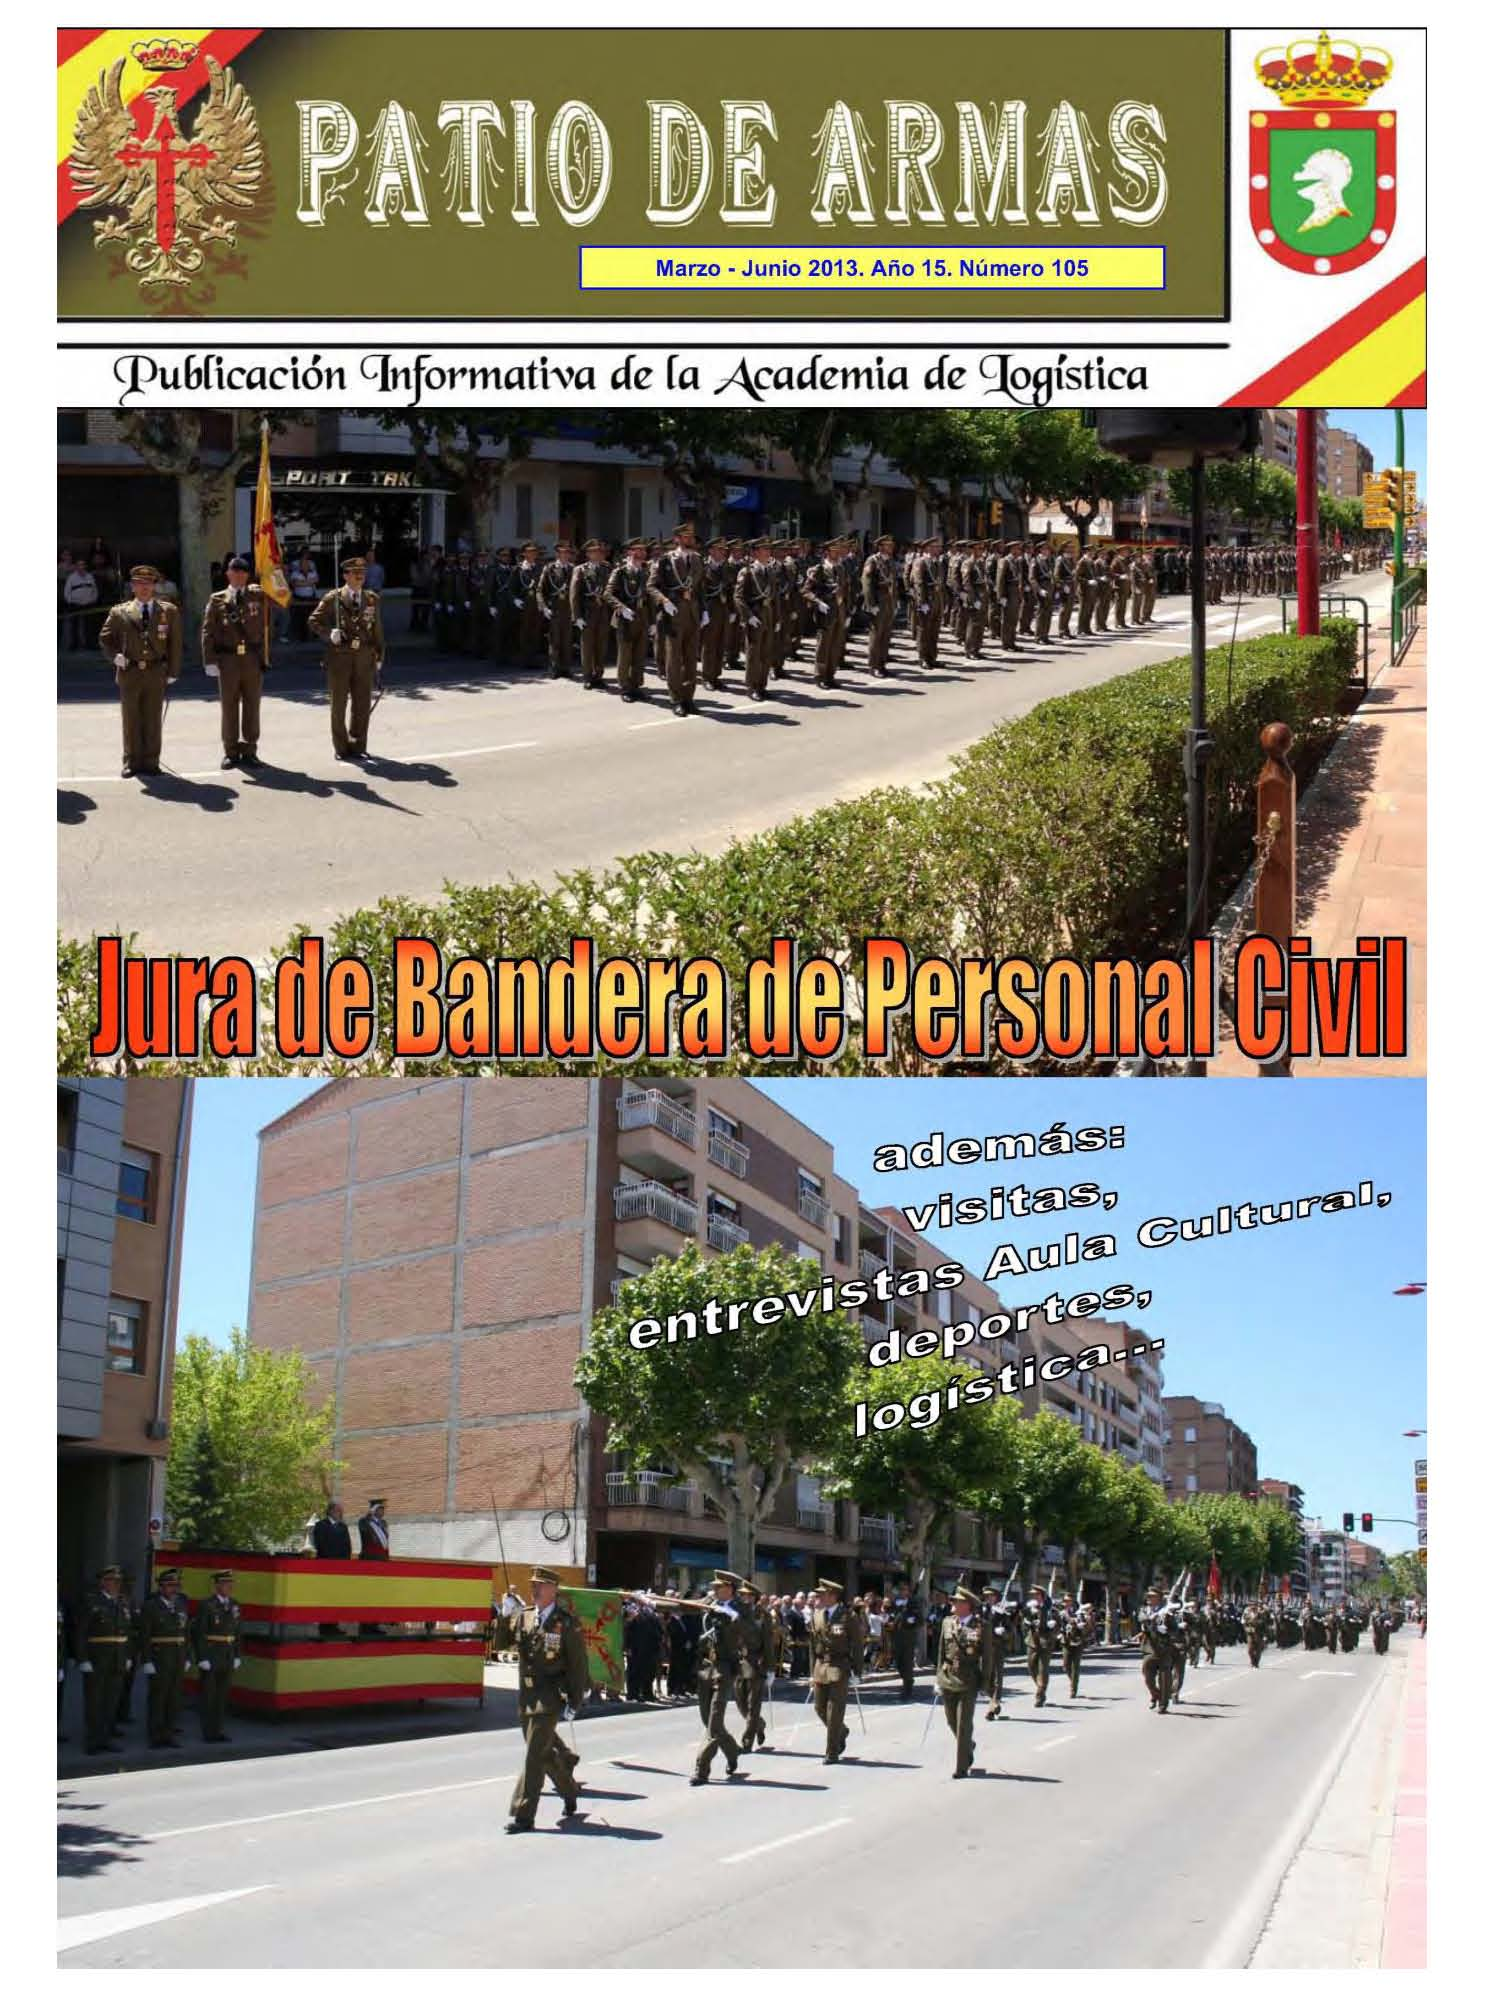 Revista PATIO DE ARMAS núm. 105